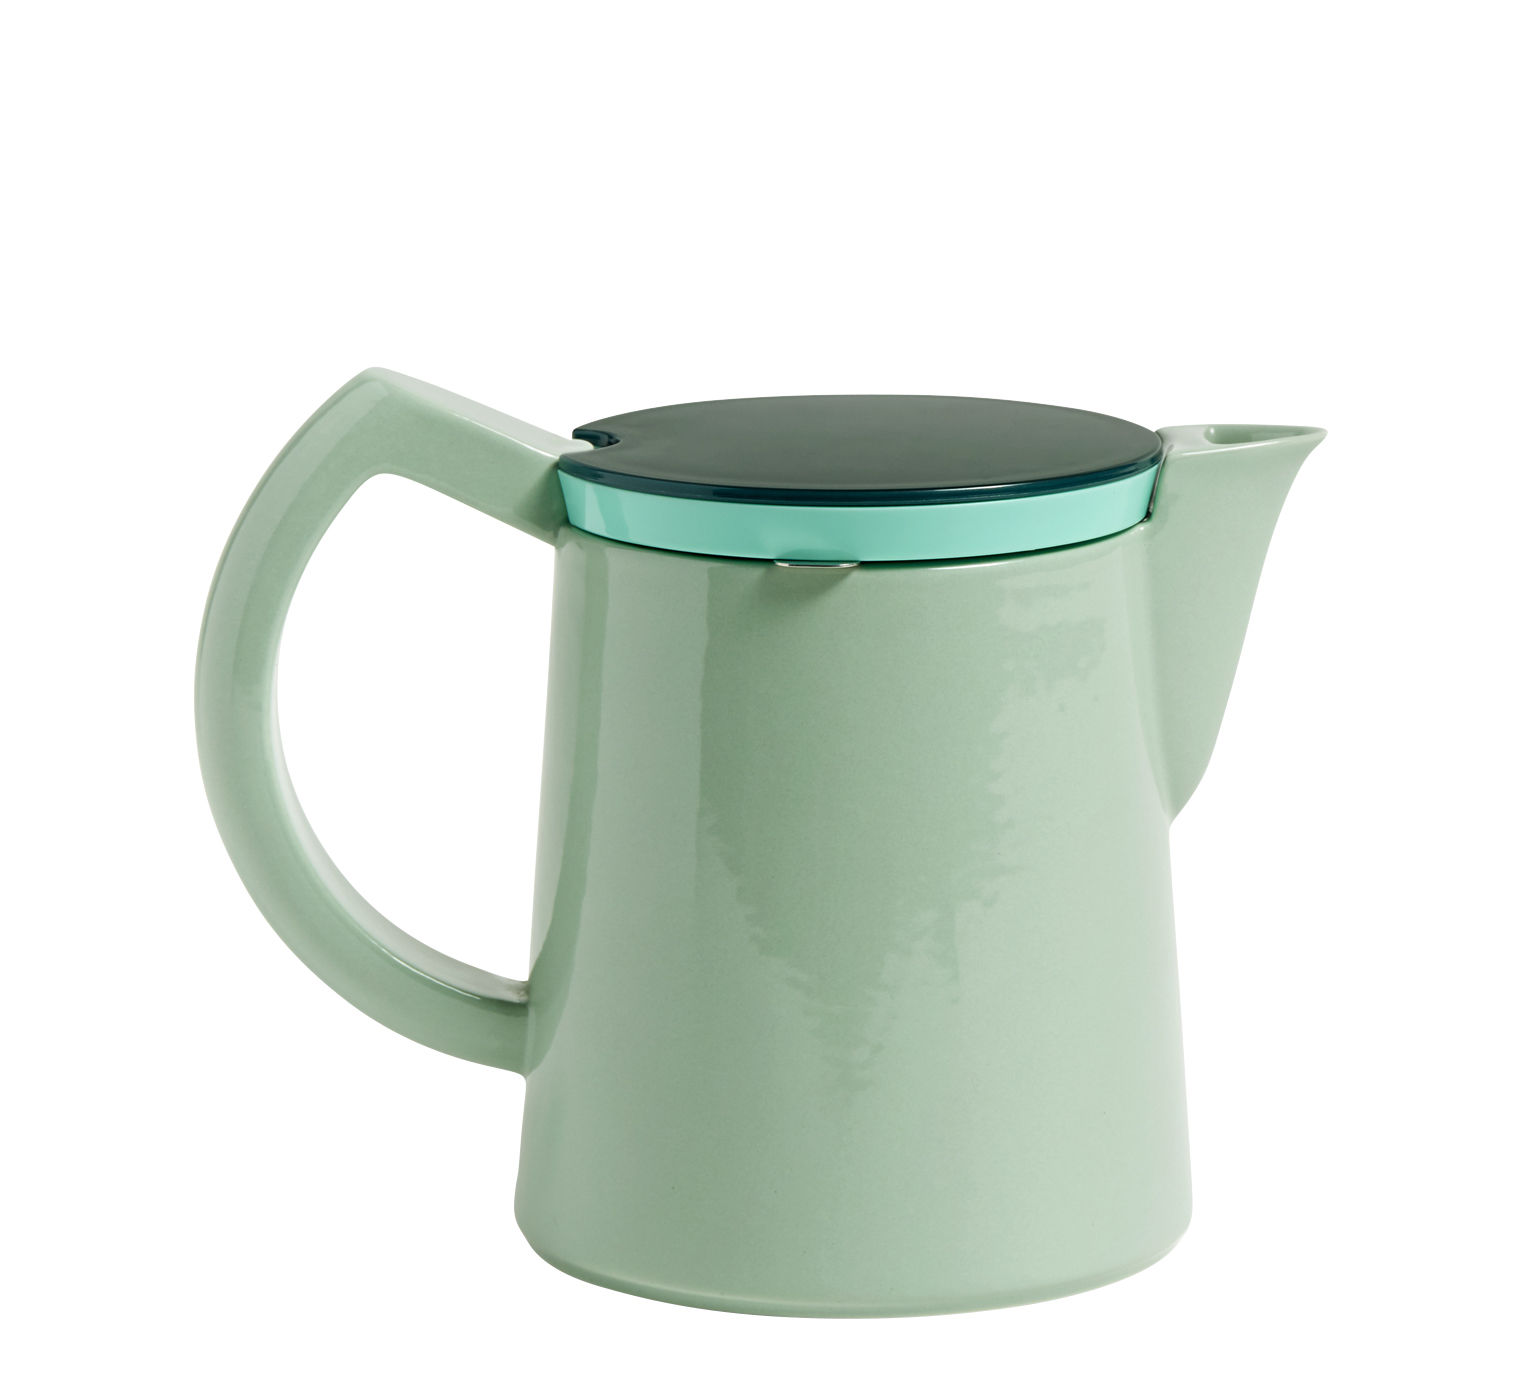 Tableware - Tea & Coffee Accessories - Manual filter coffee maker - / Medium - 0.8 l by Hay - Light green - China, Plastic, Stainless steel